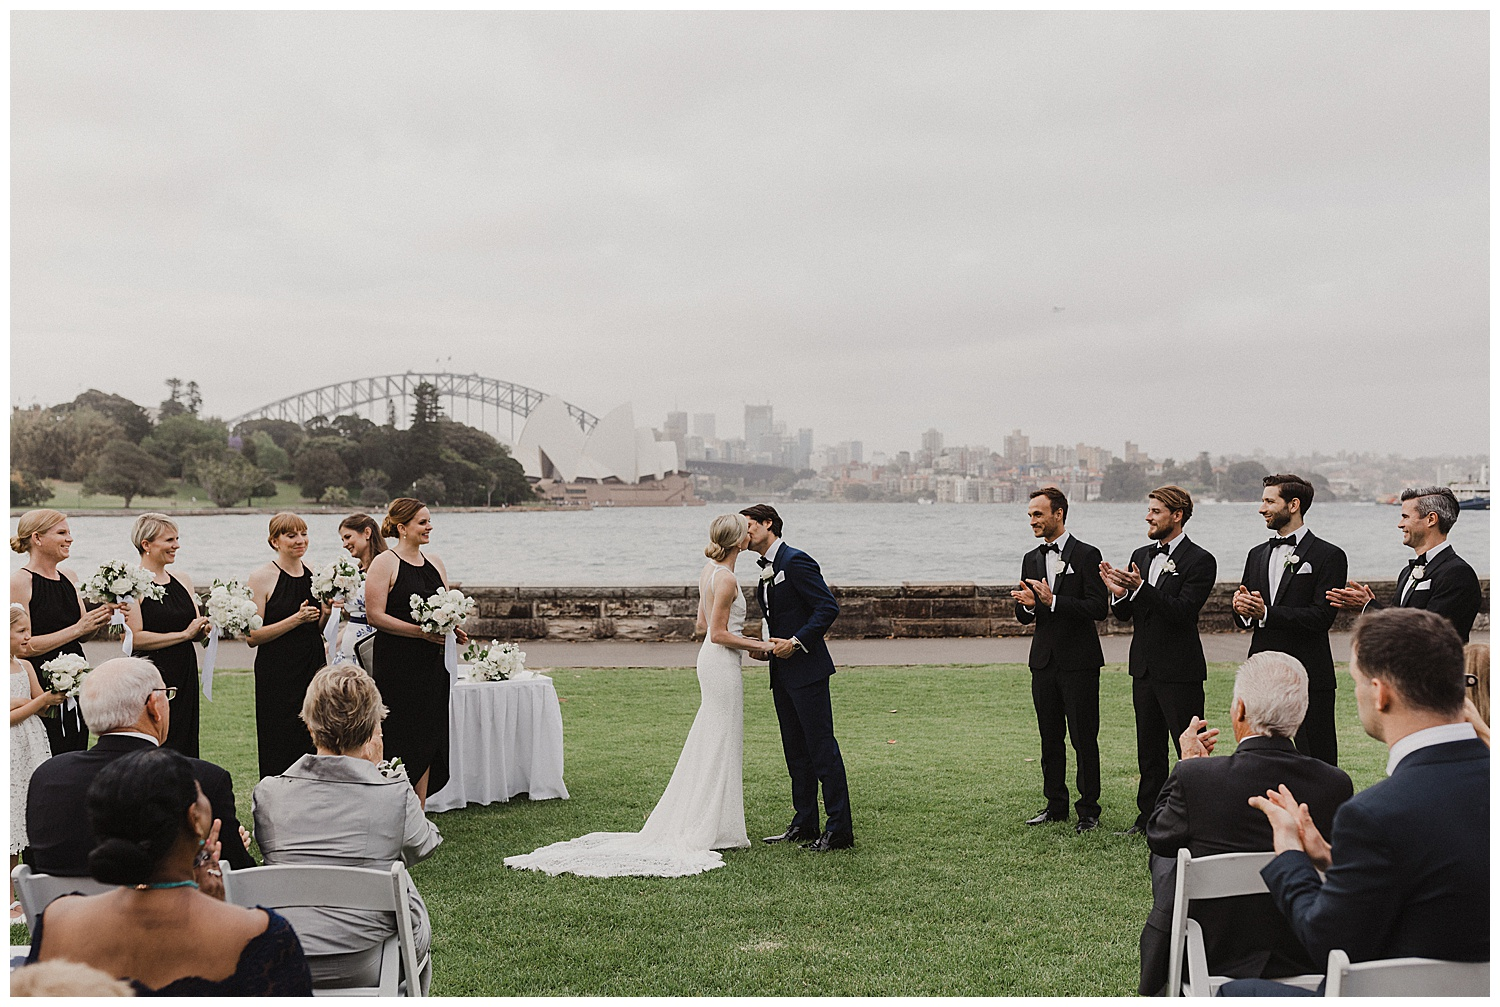 A couple's first kiss at a Sydney Royal Botanic Gardens Wedding